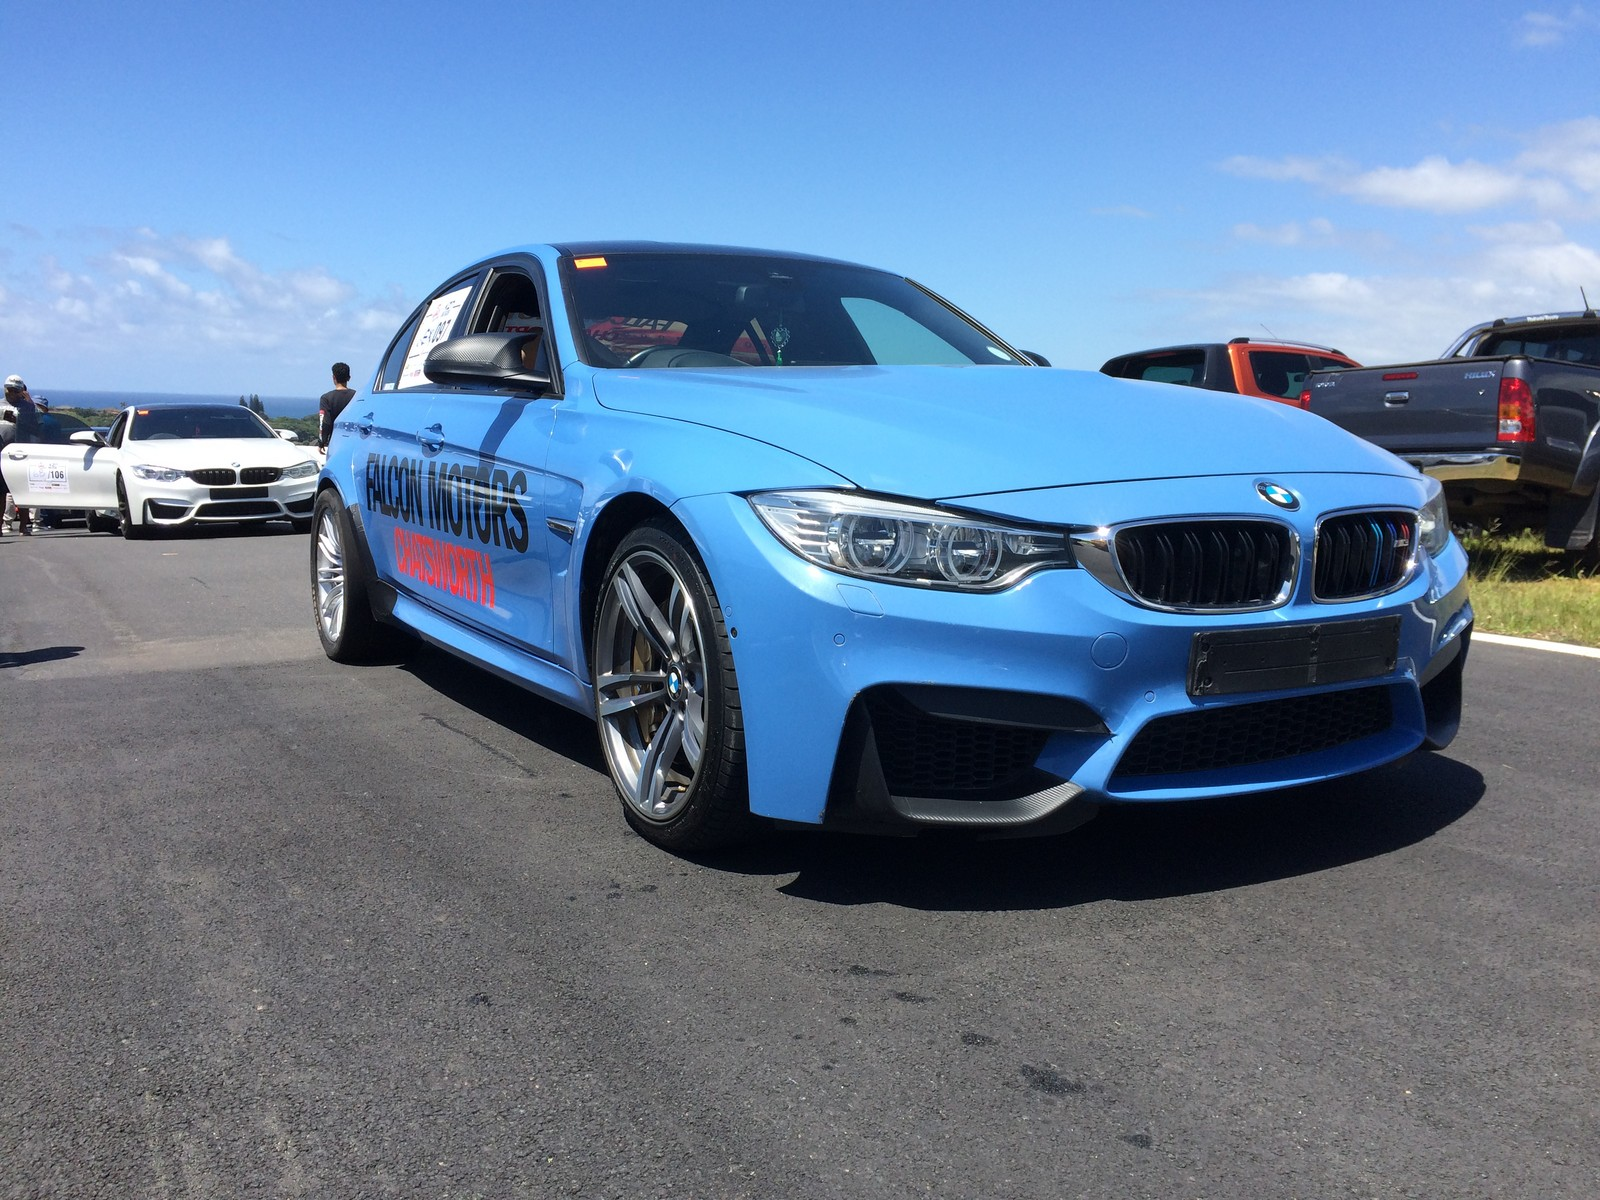 2015 Yas Marina BMW M3 F80 picture, mods, upgrades